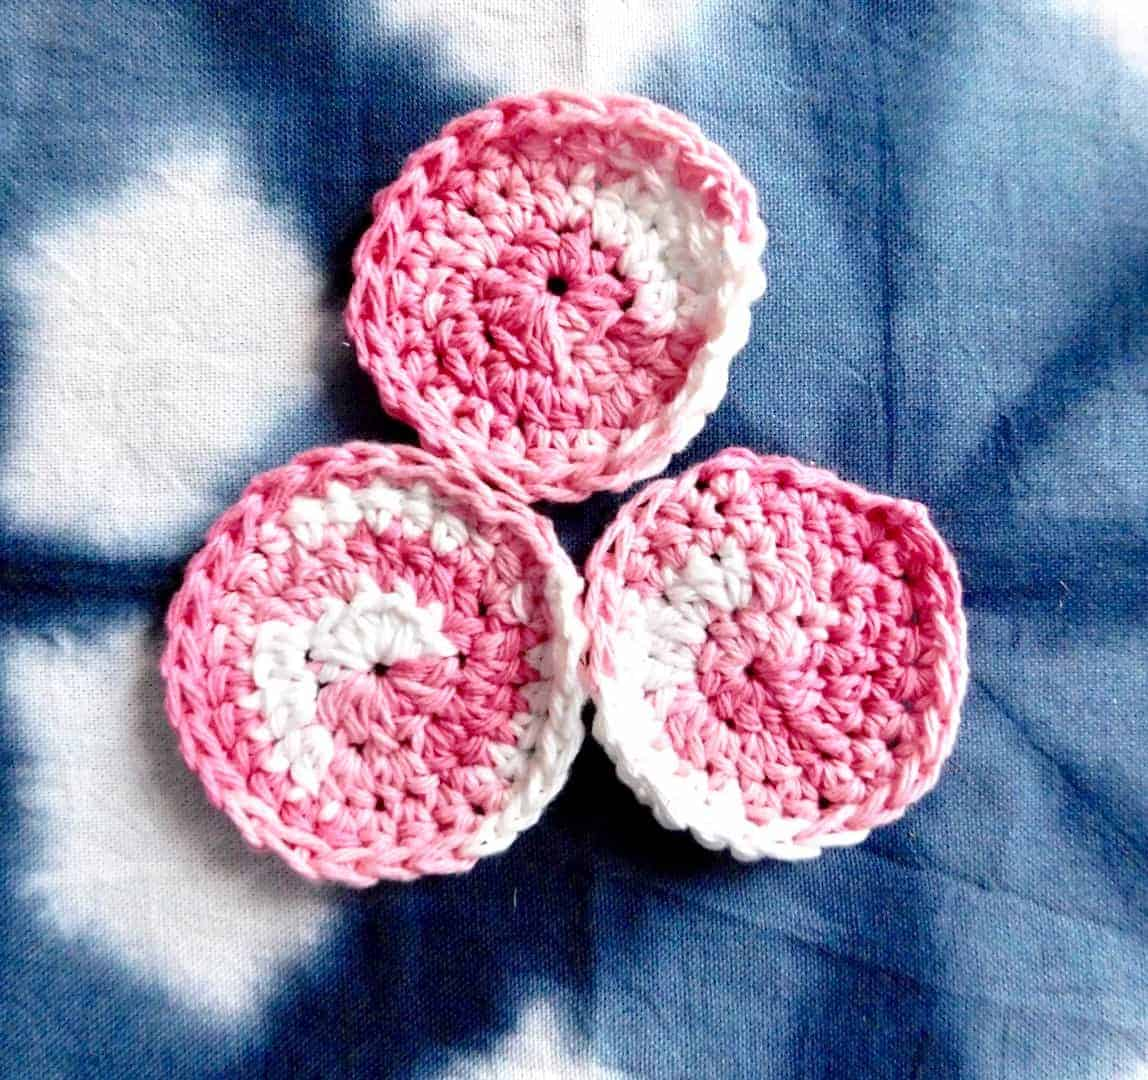 Crochet Face Scrubbie tutorial with pink cotton yarn